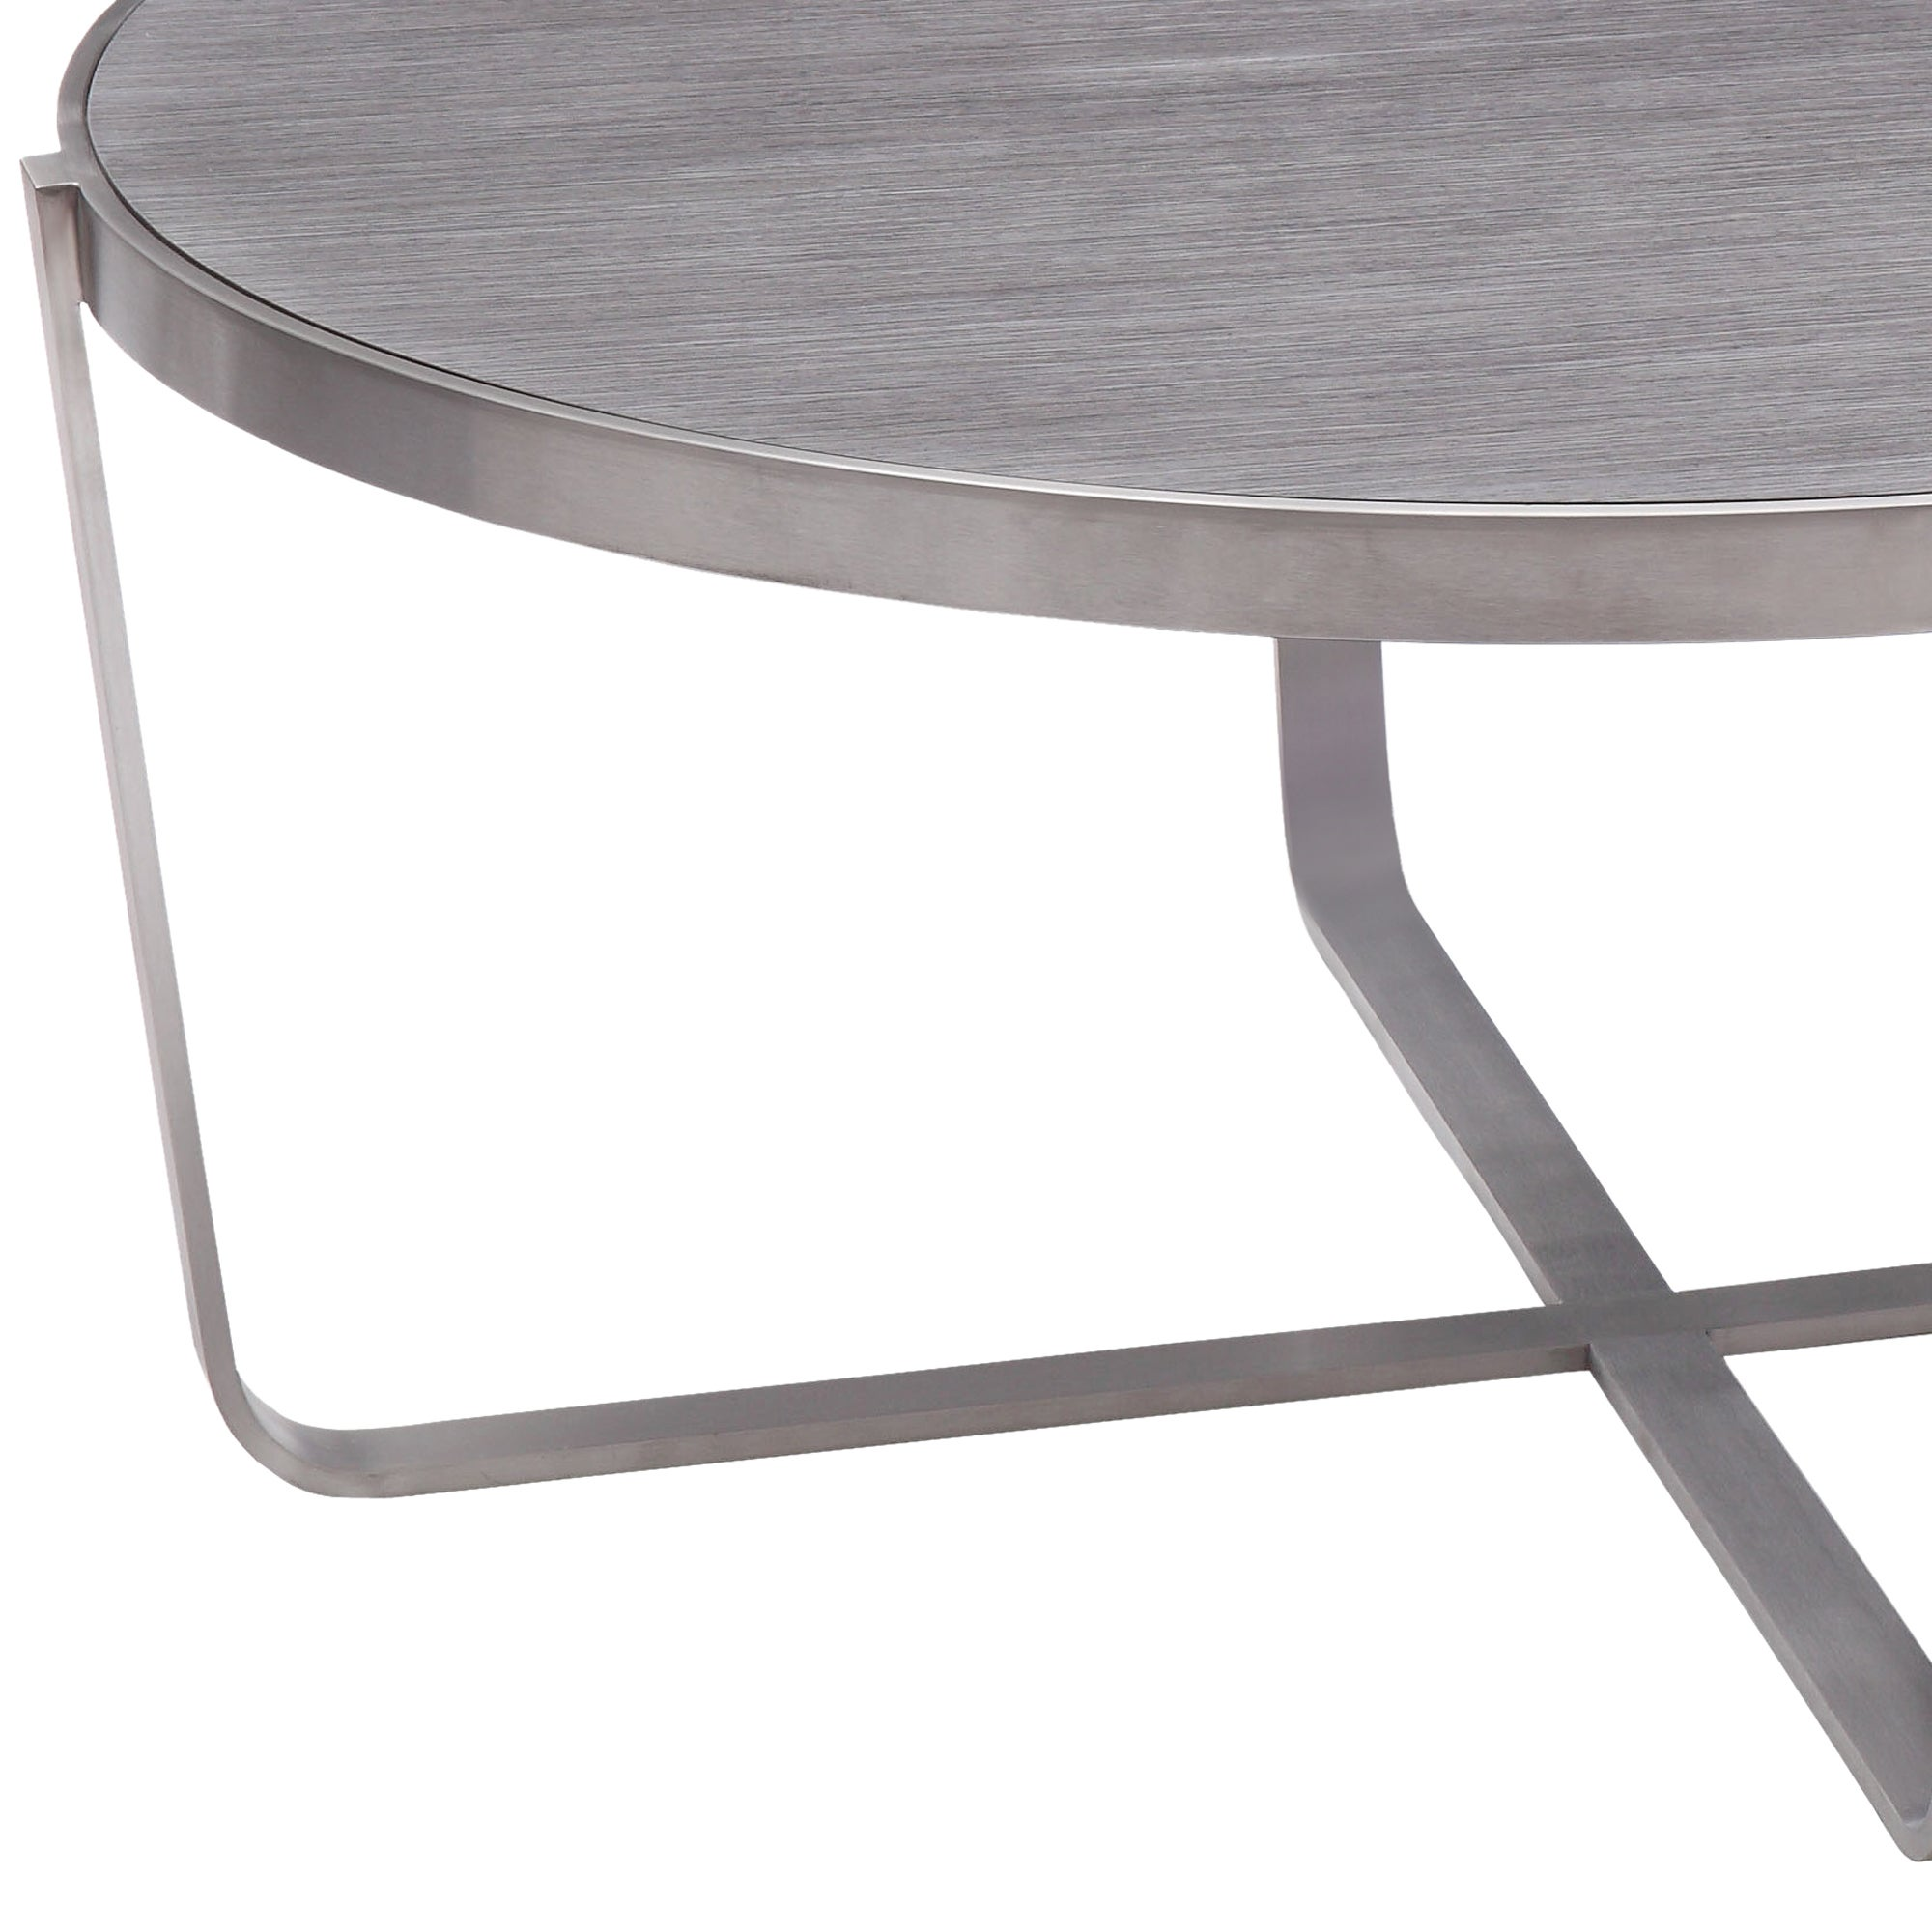 Armen Living Nova Coffee Table In Brushed Stainless Steel With Grey Top    Free Shipping Today   Overstock   18586336